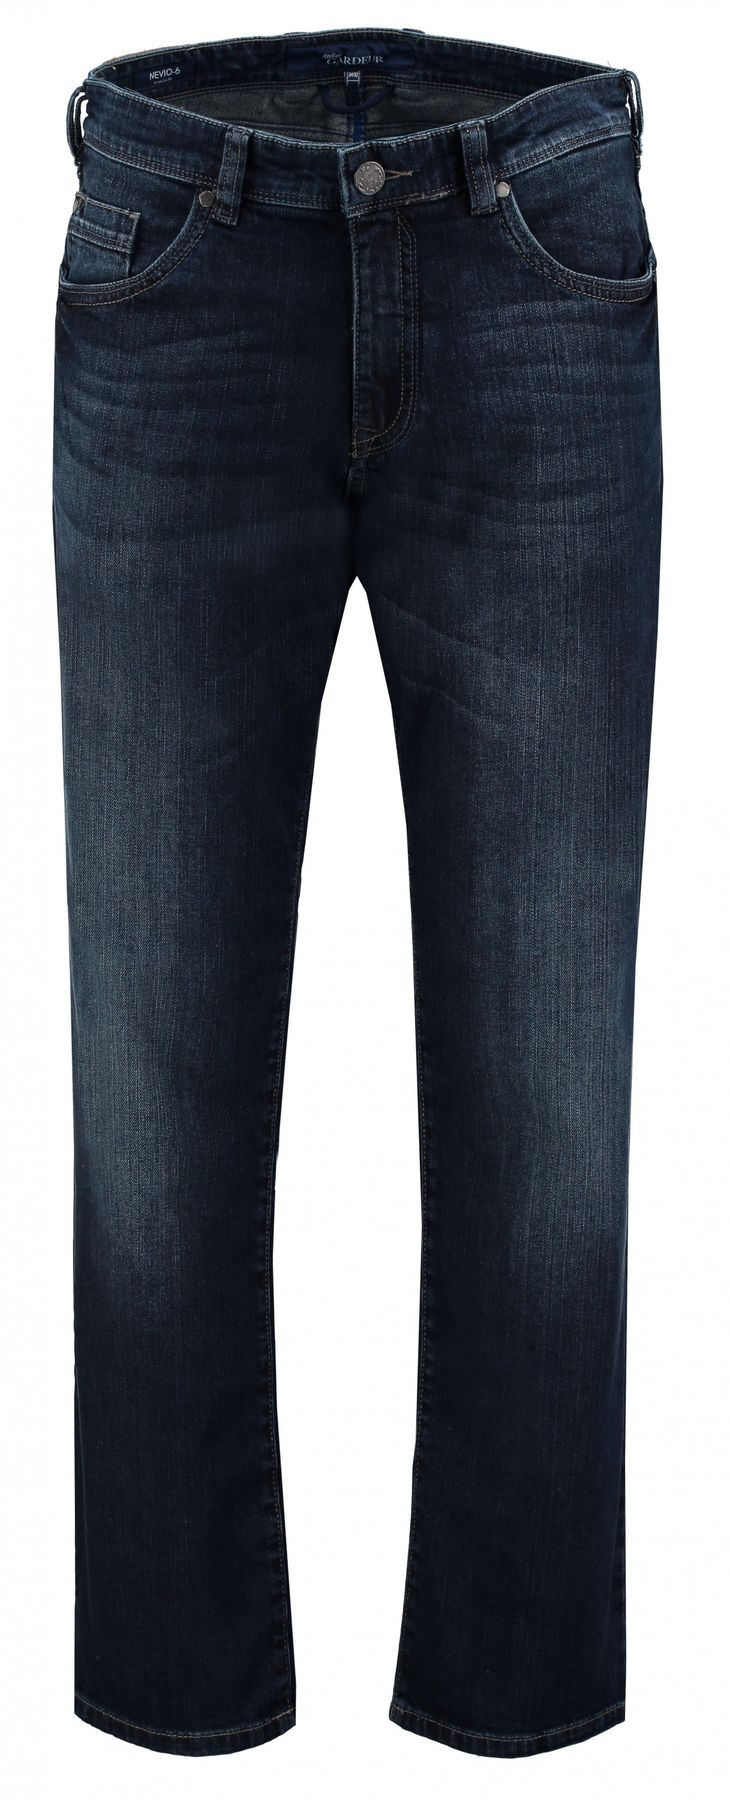 Atelier Gardeur - Regular Fit - Herren 5-Pocket Jeans in Dark Stone(68) und bleached blue(165), Nevio-6 (71080)